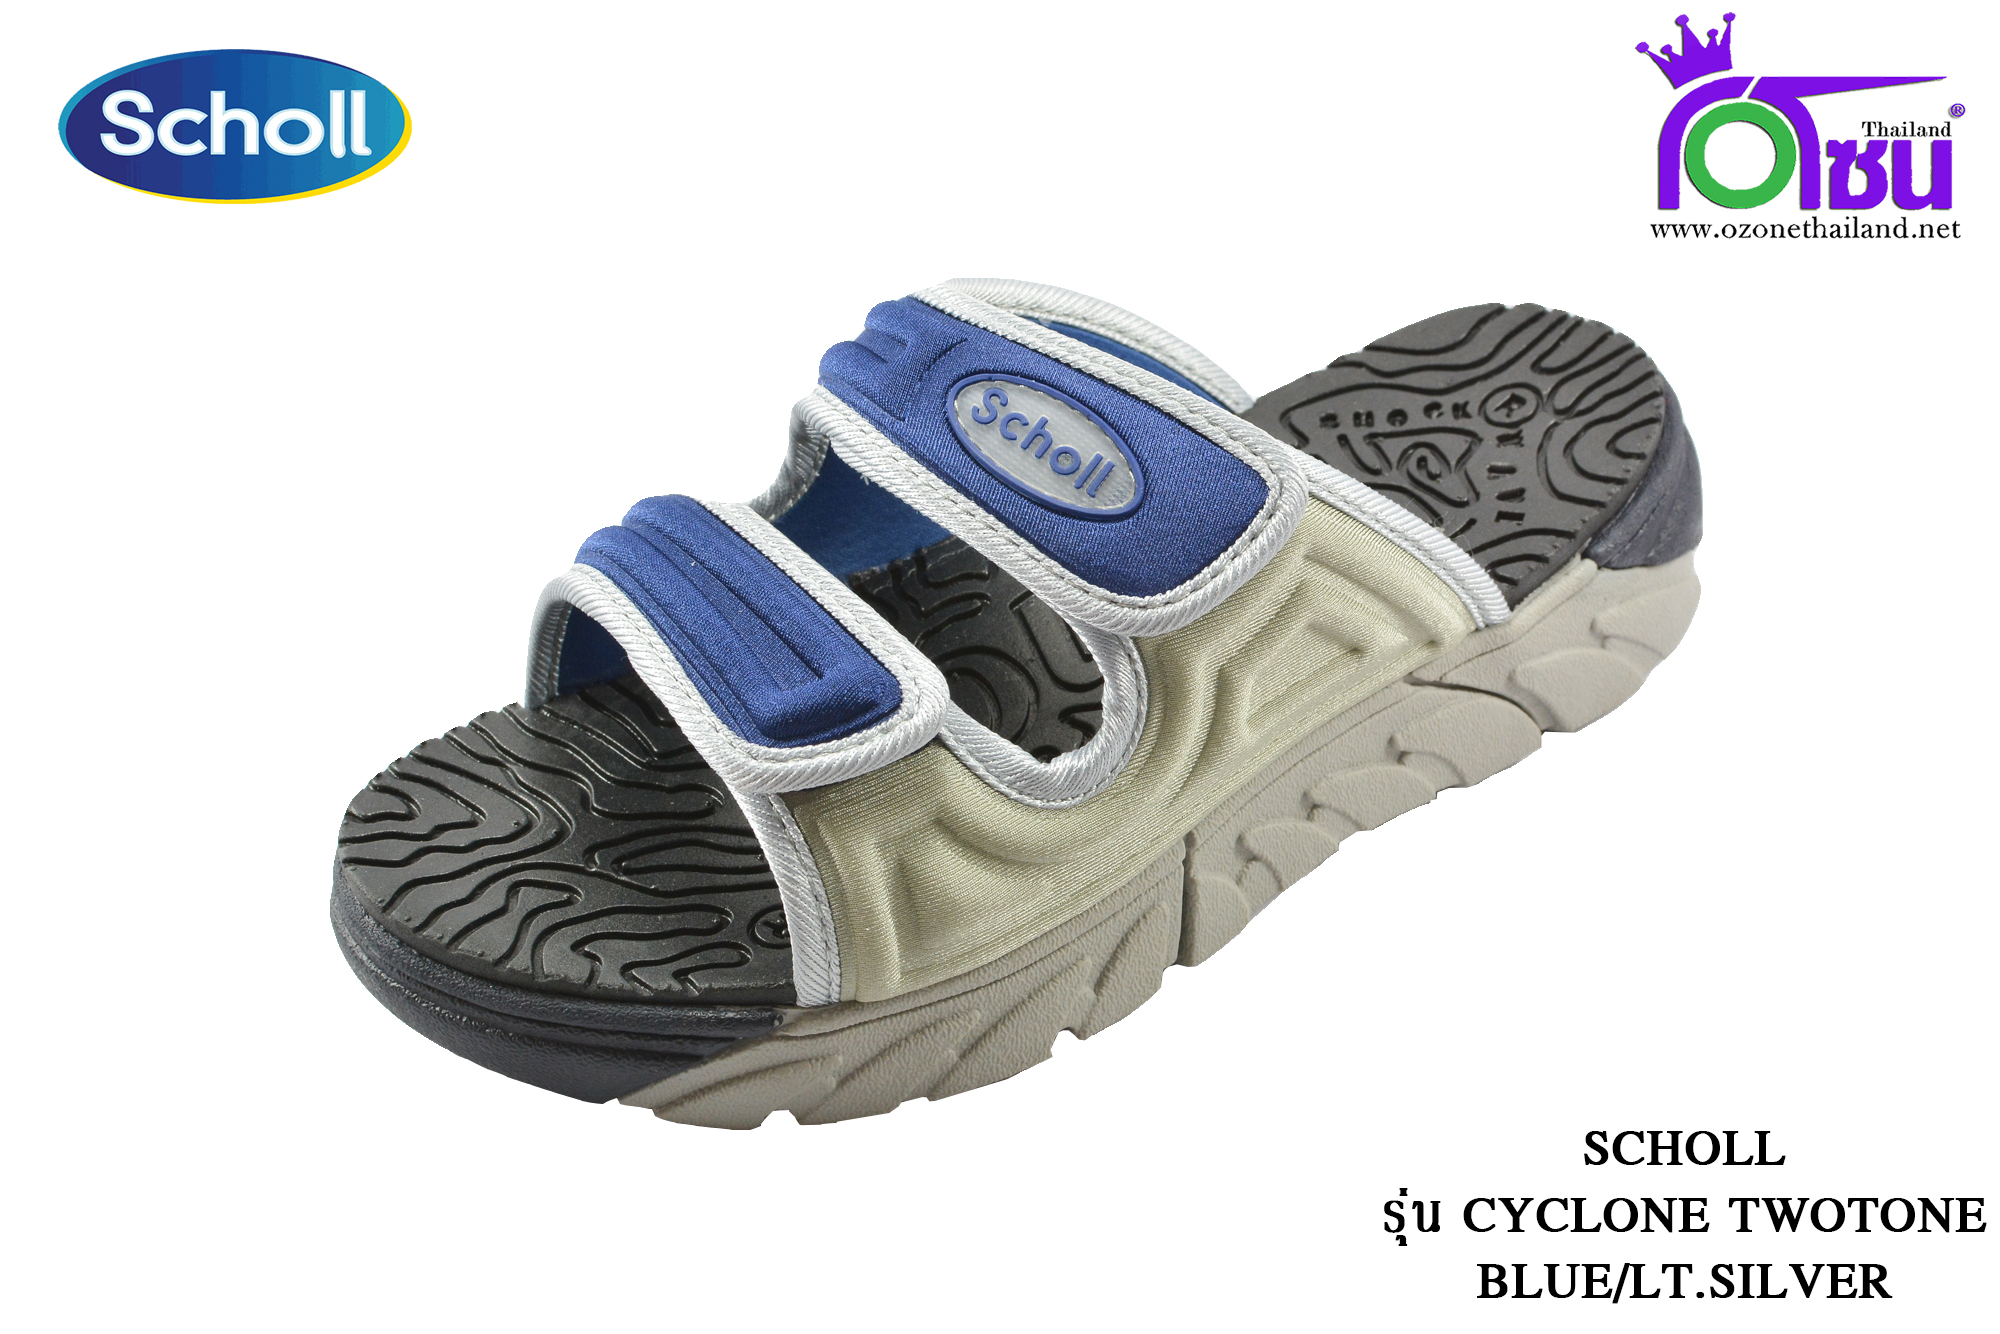 Scholl Cyclone twotone (ไซโคลน ทูโทน) Navy/Silver